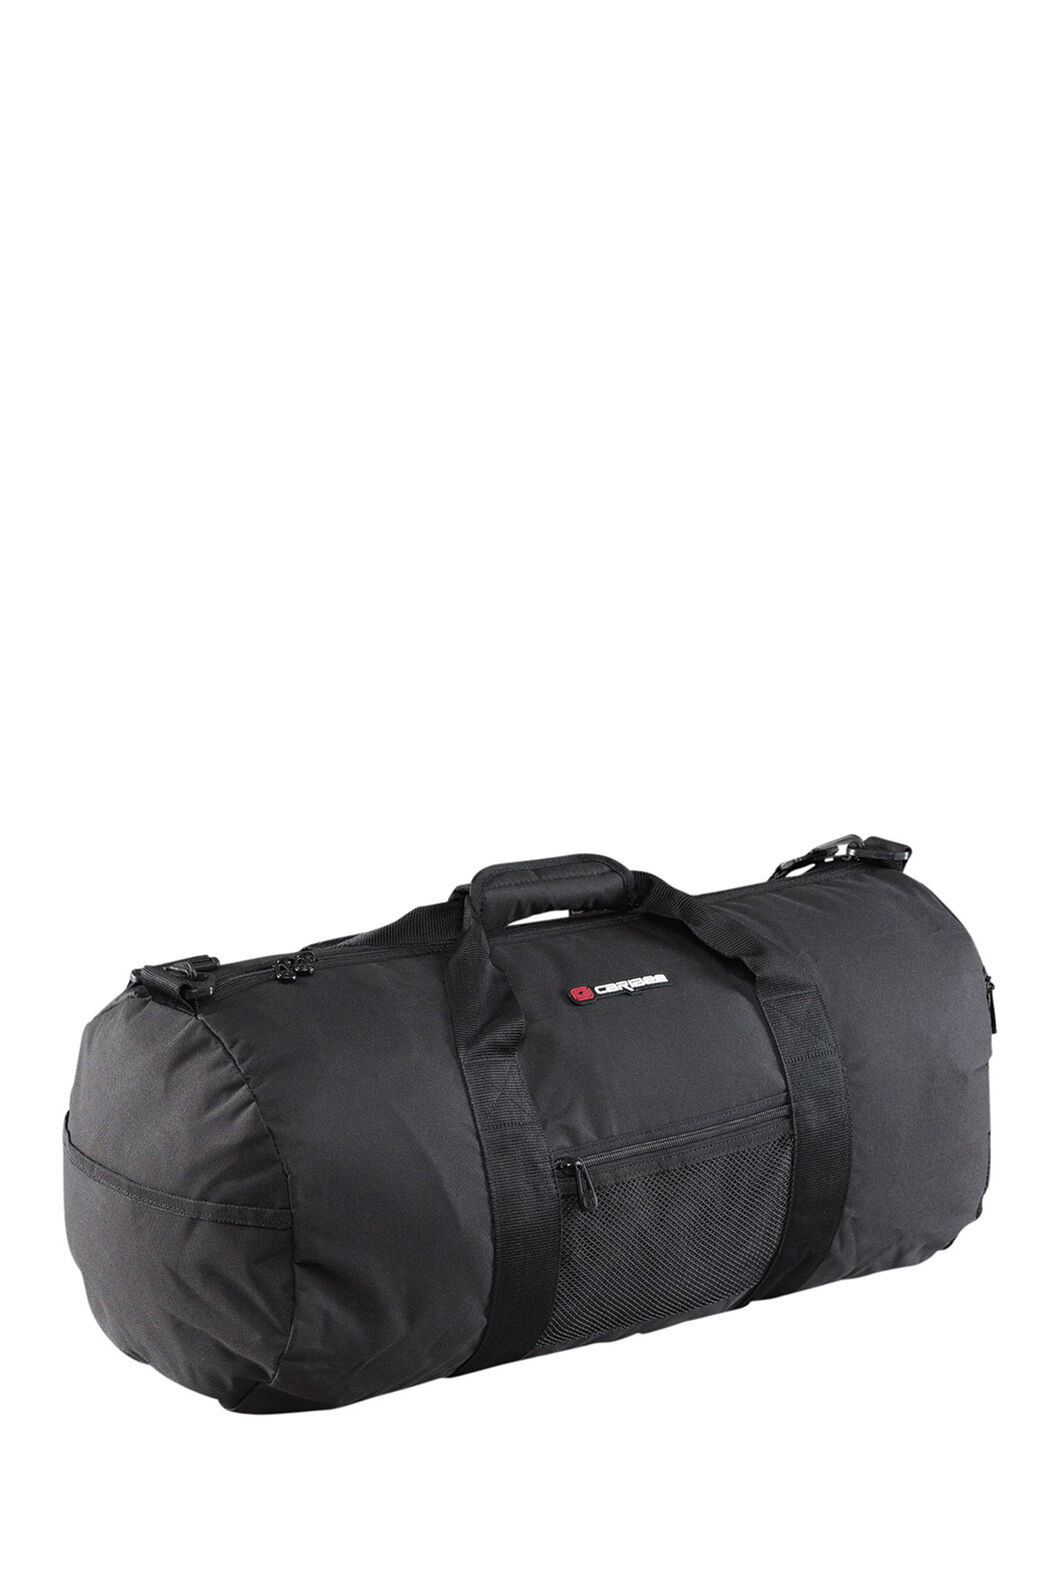 Caribee Urban Utility Duffle Bag 76cm, None, hi-res